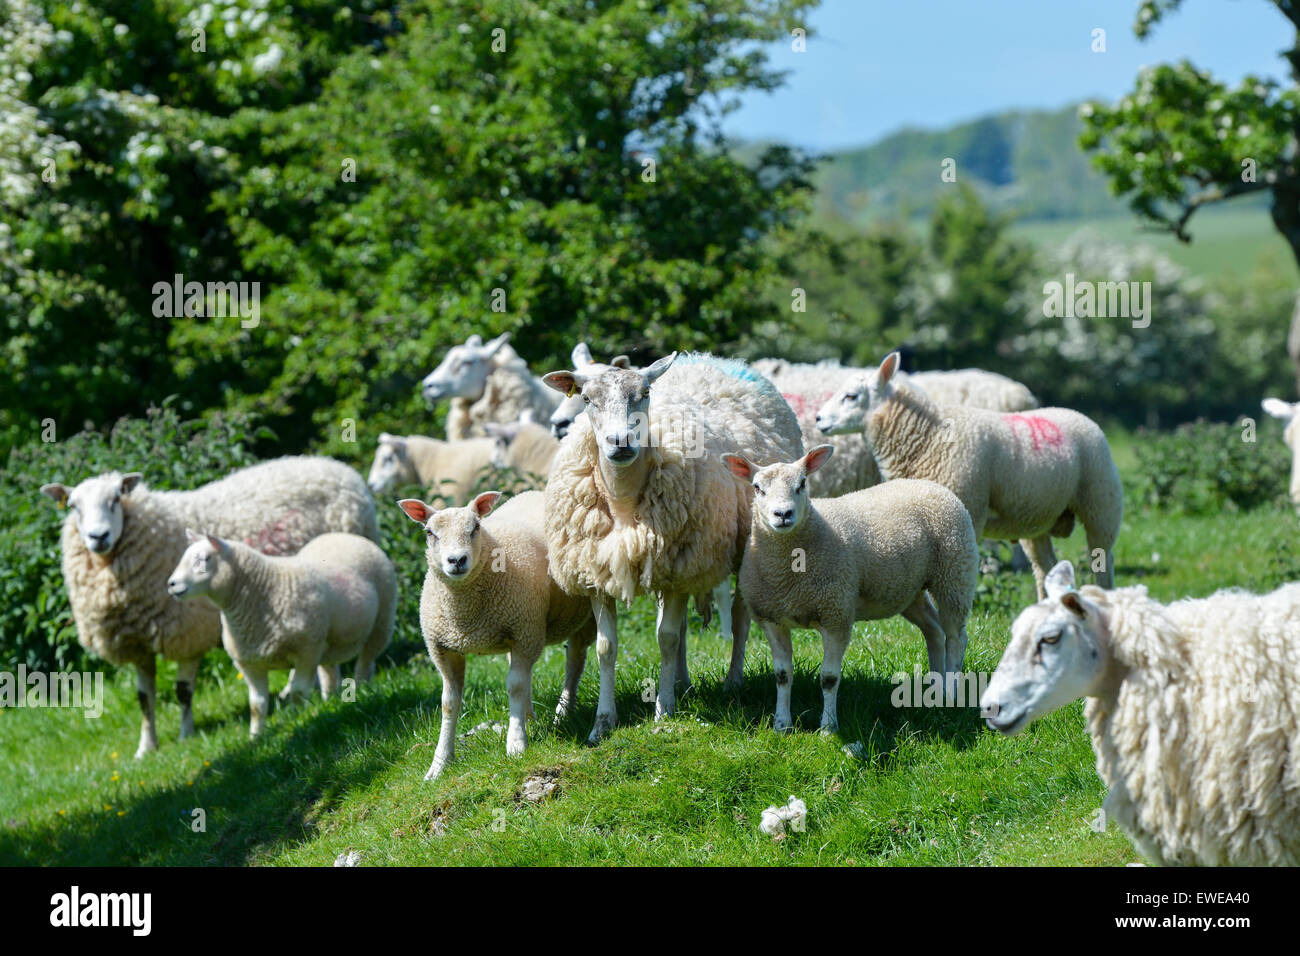 Sheep in pasture with beltex sired lambs at foot. Cumbria, UK. - Stock Image